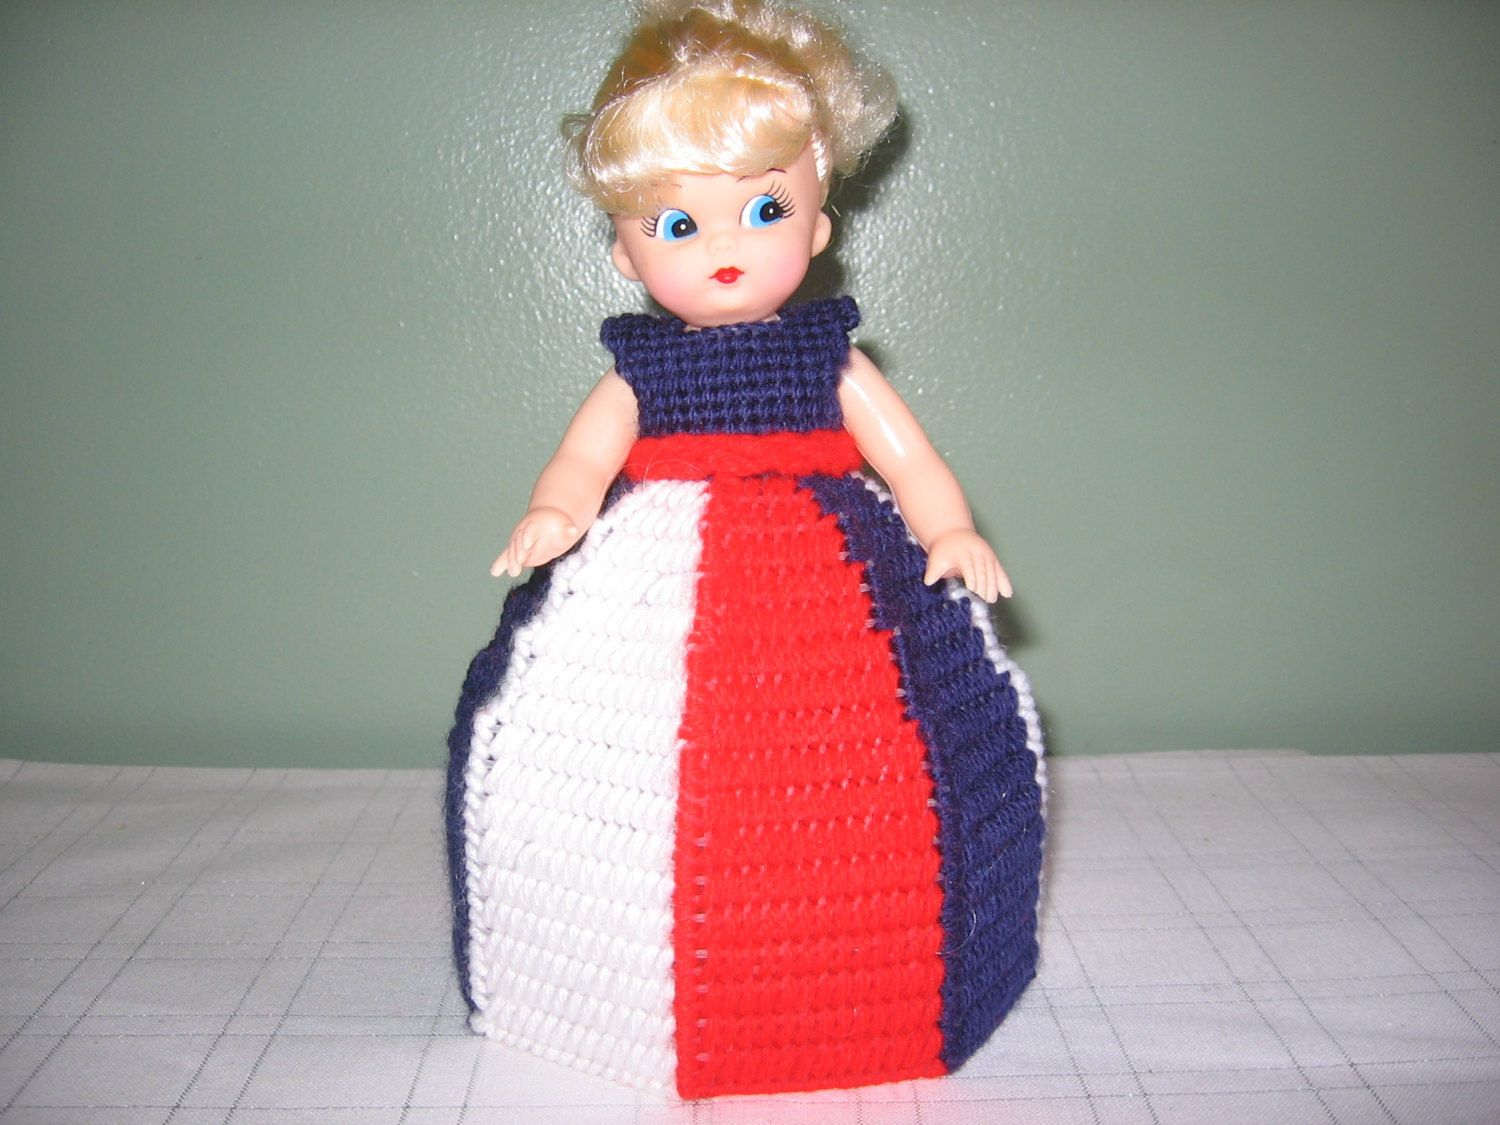 Red/White/Blue Collectible Doll - use for decoration or air freshner doll by CreationsbyAMJ on Etsy #airfreshnerdolls